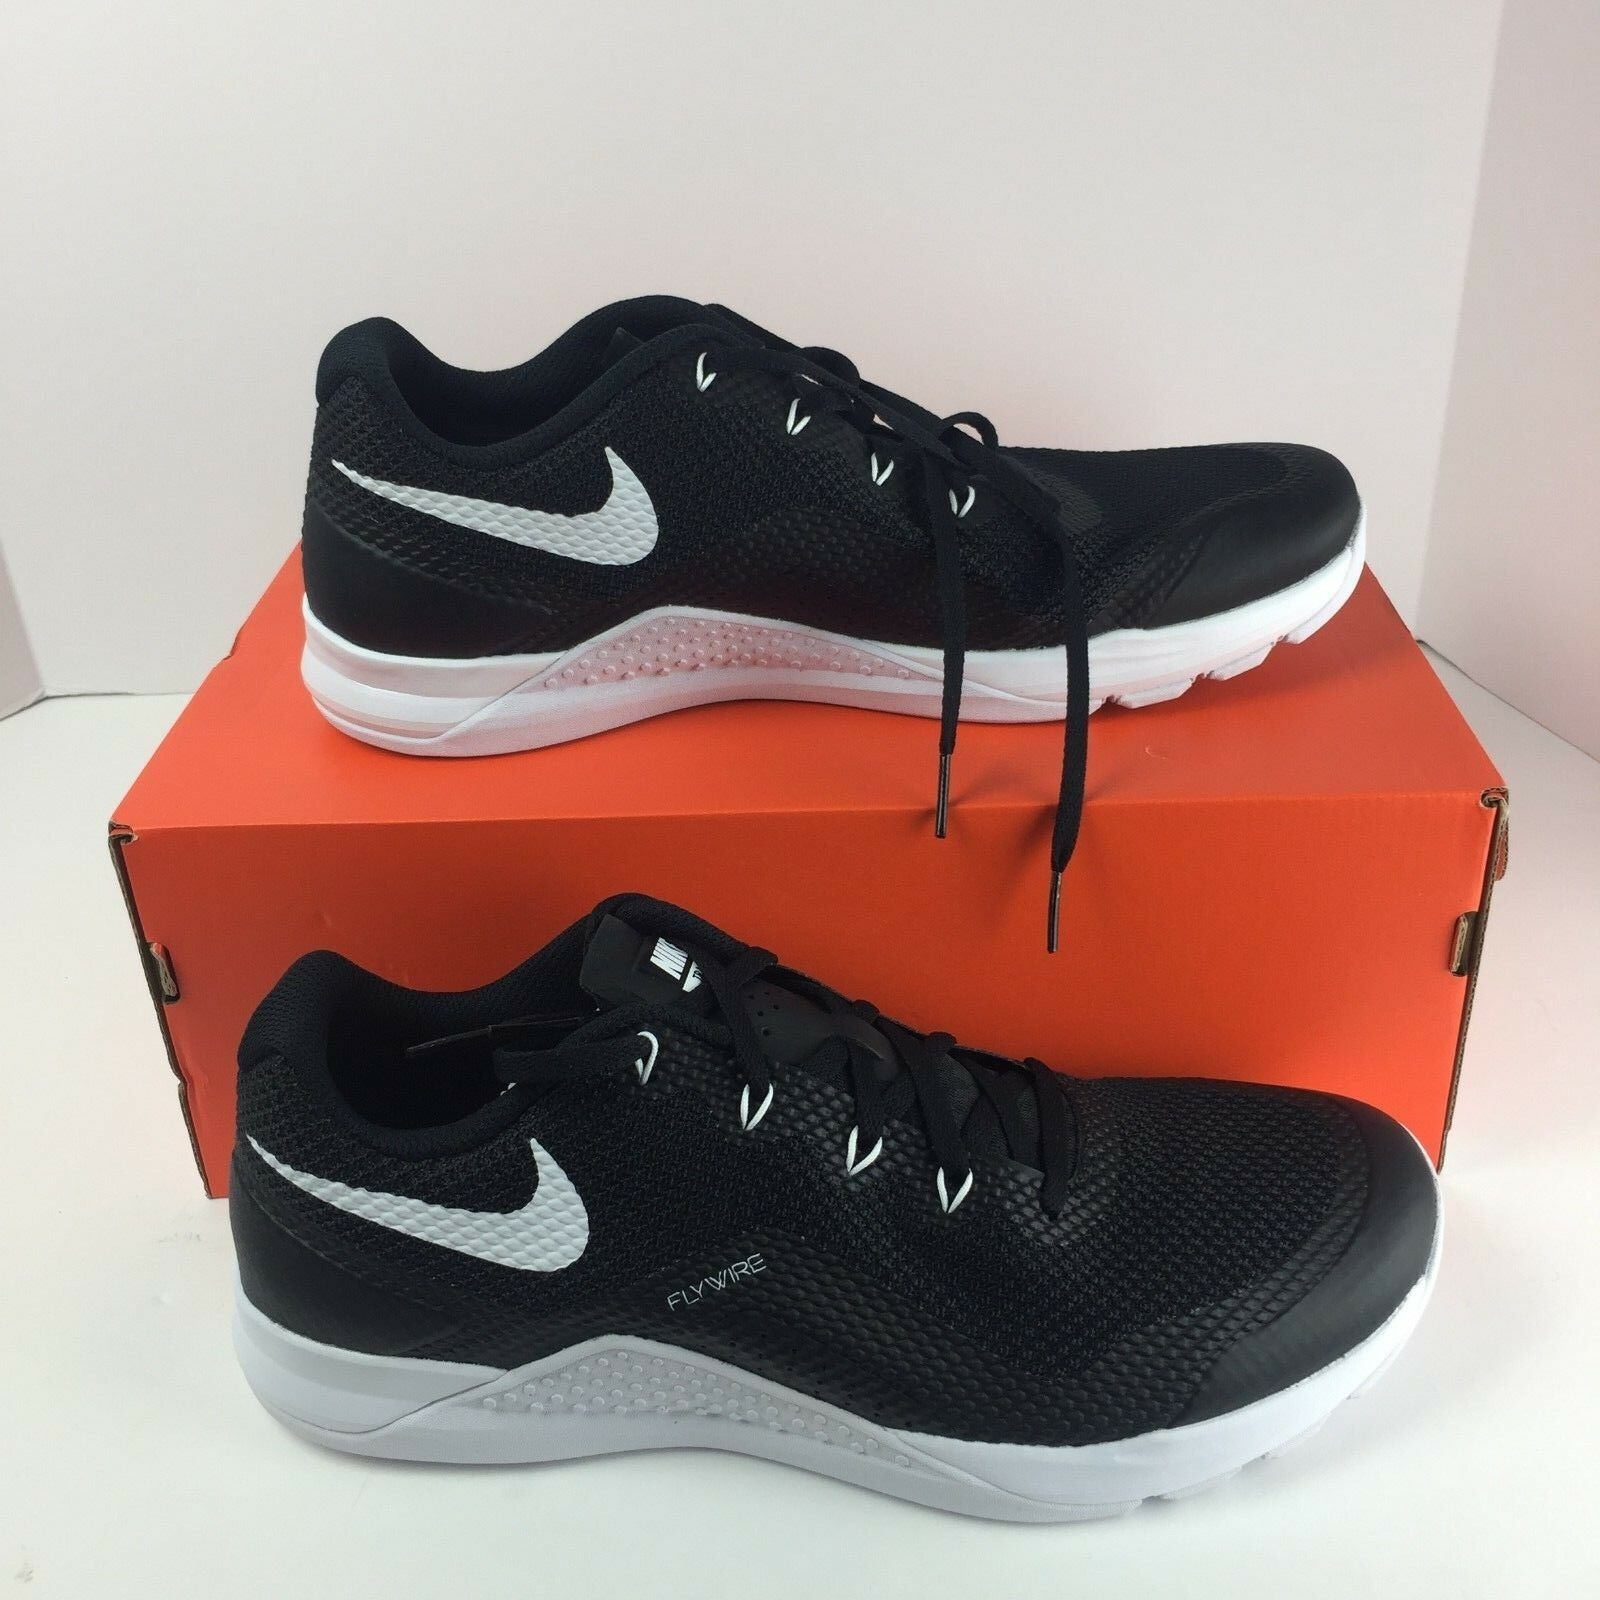 Nike Metcon Repper DSX Mens Running shoes 898048 002 SIZE 11 New in the box